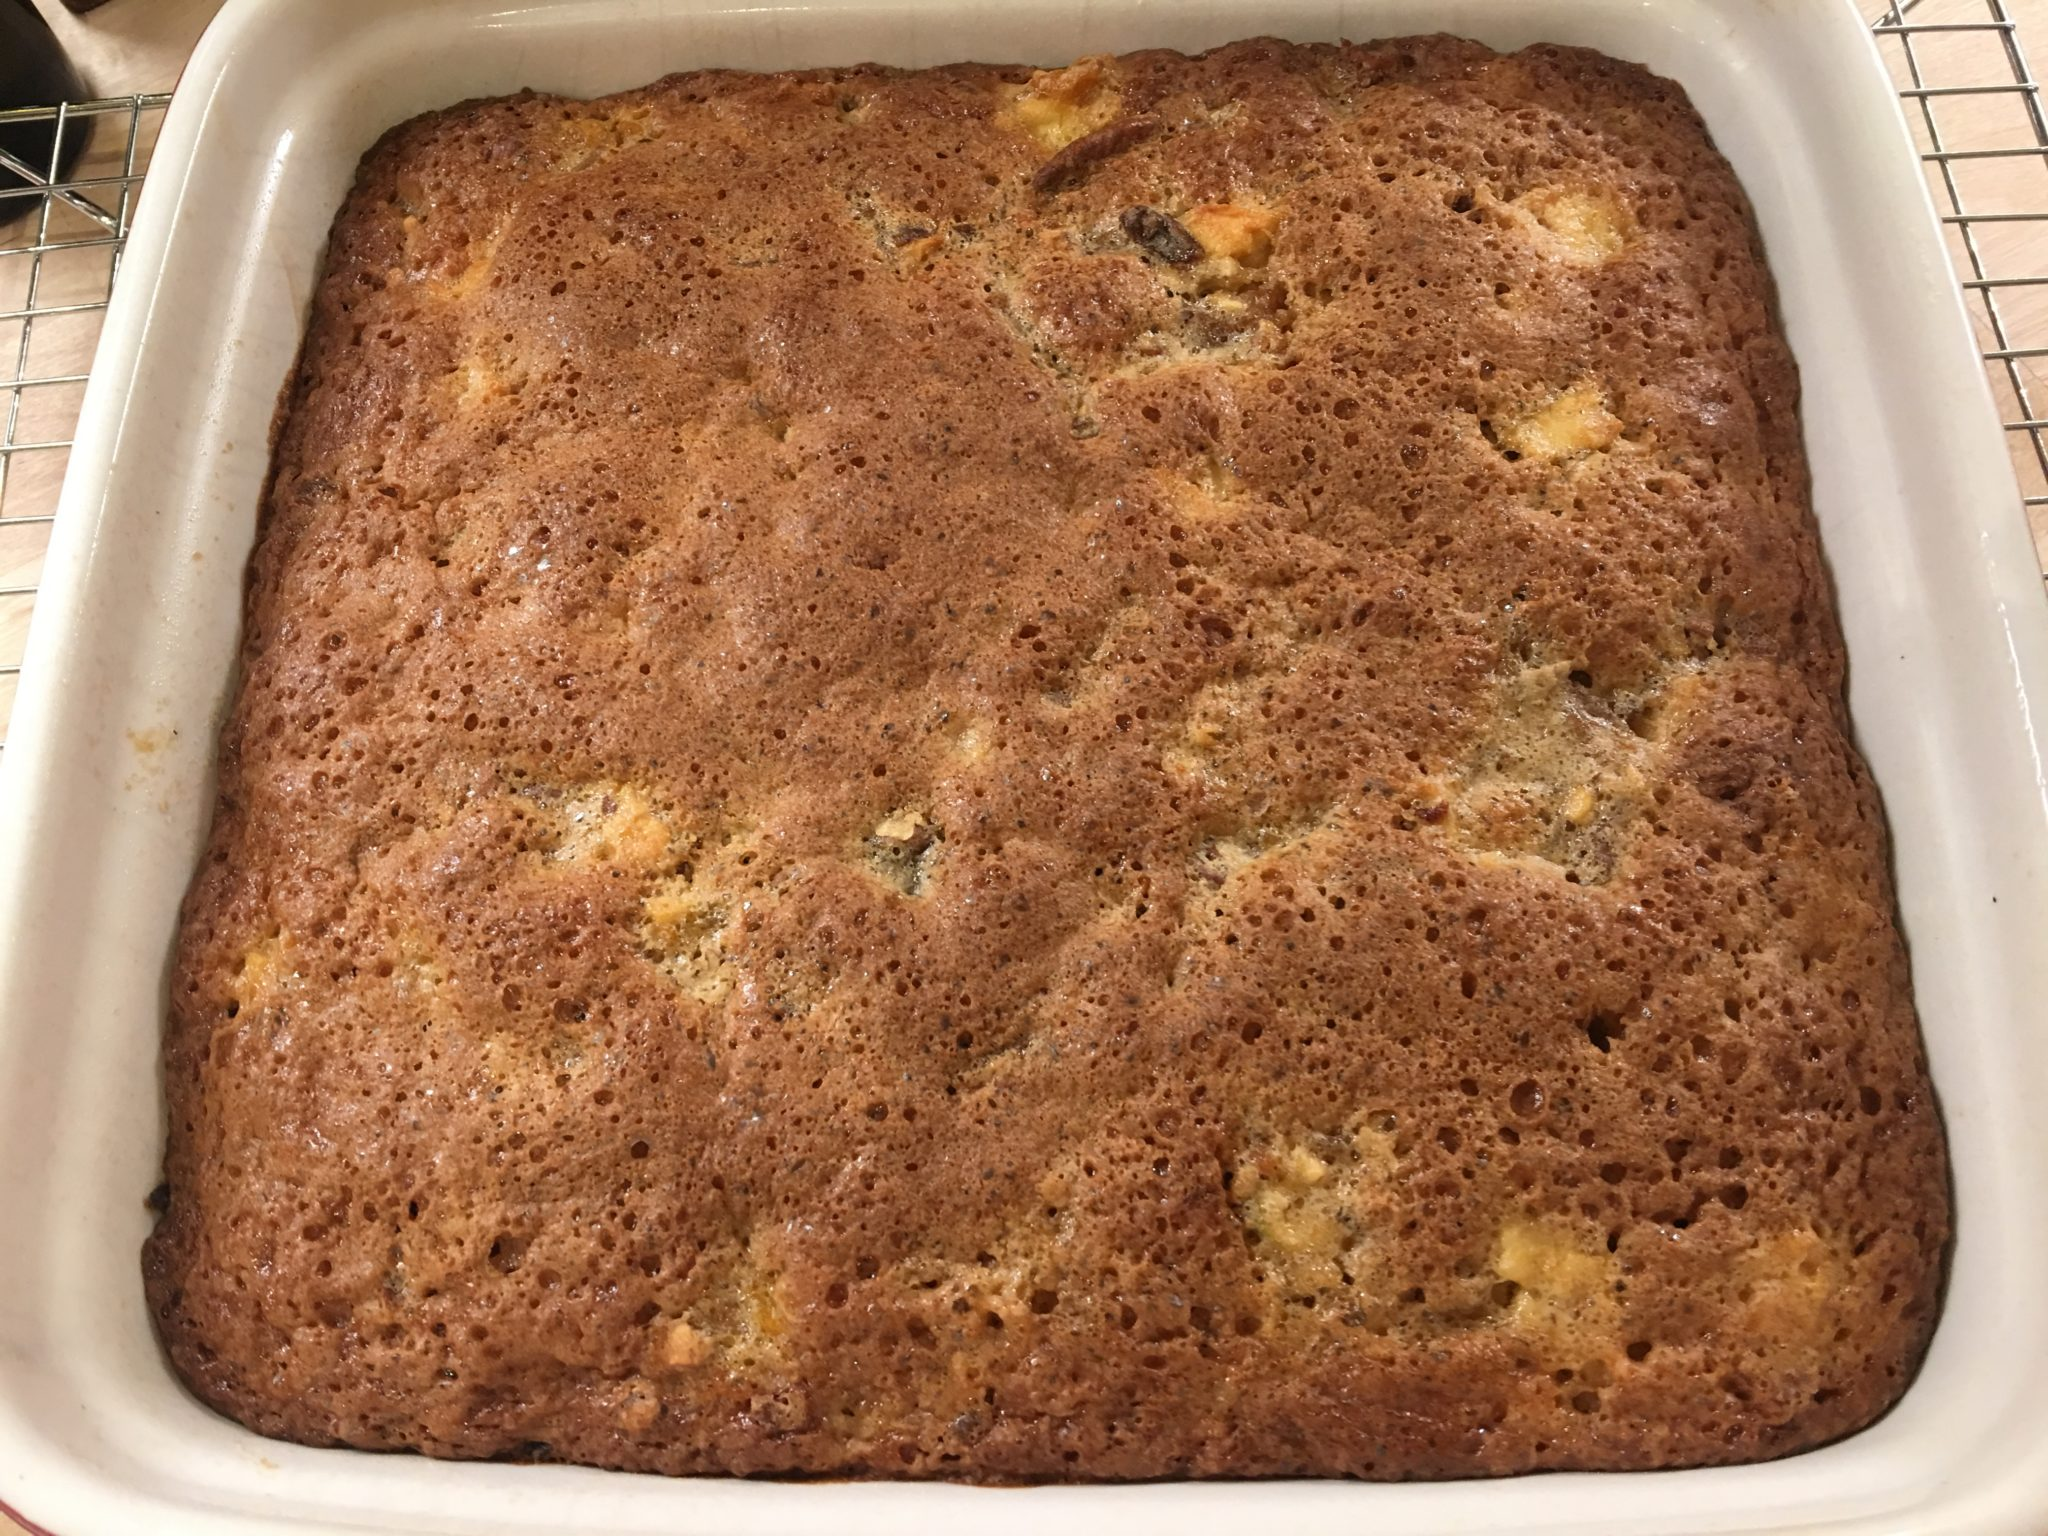 Fruit nuts bars fresh from the oven